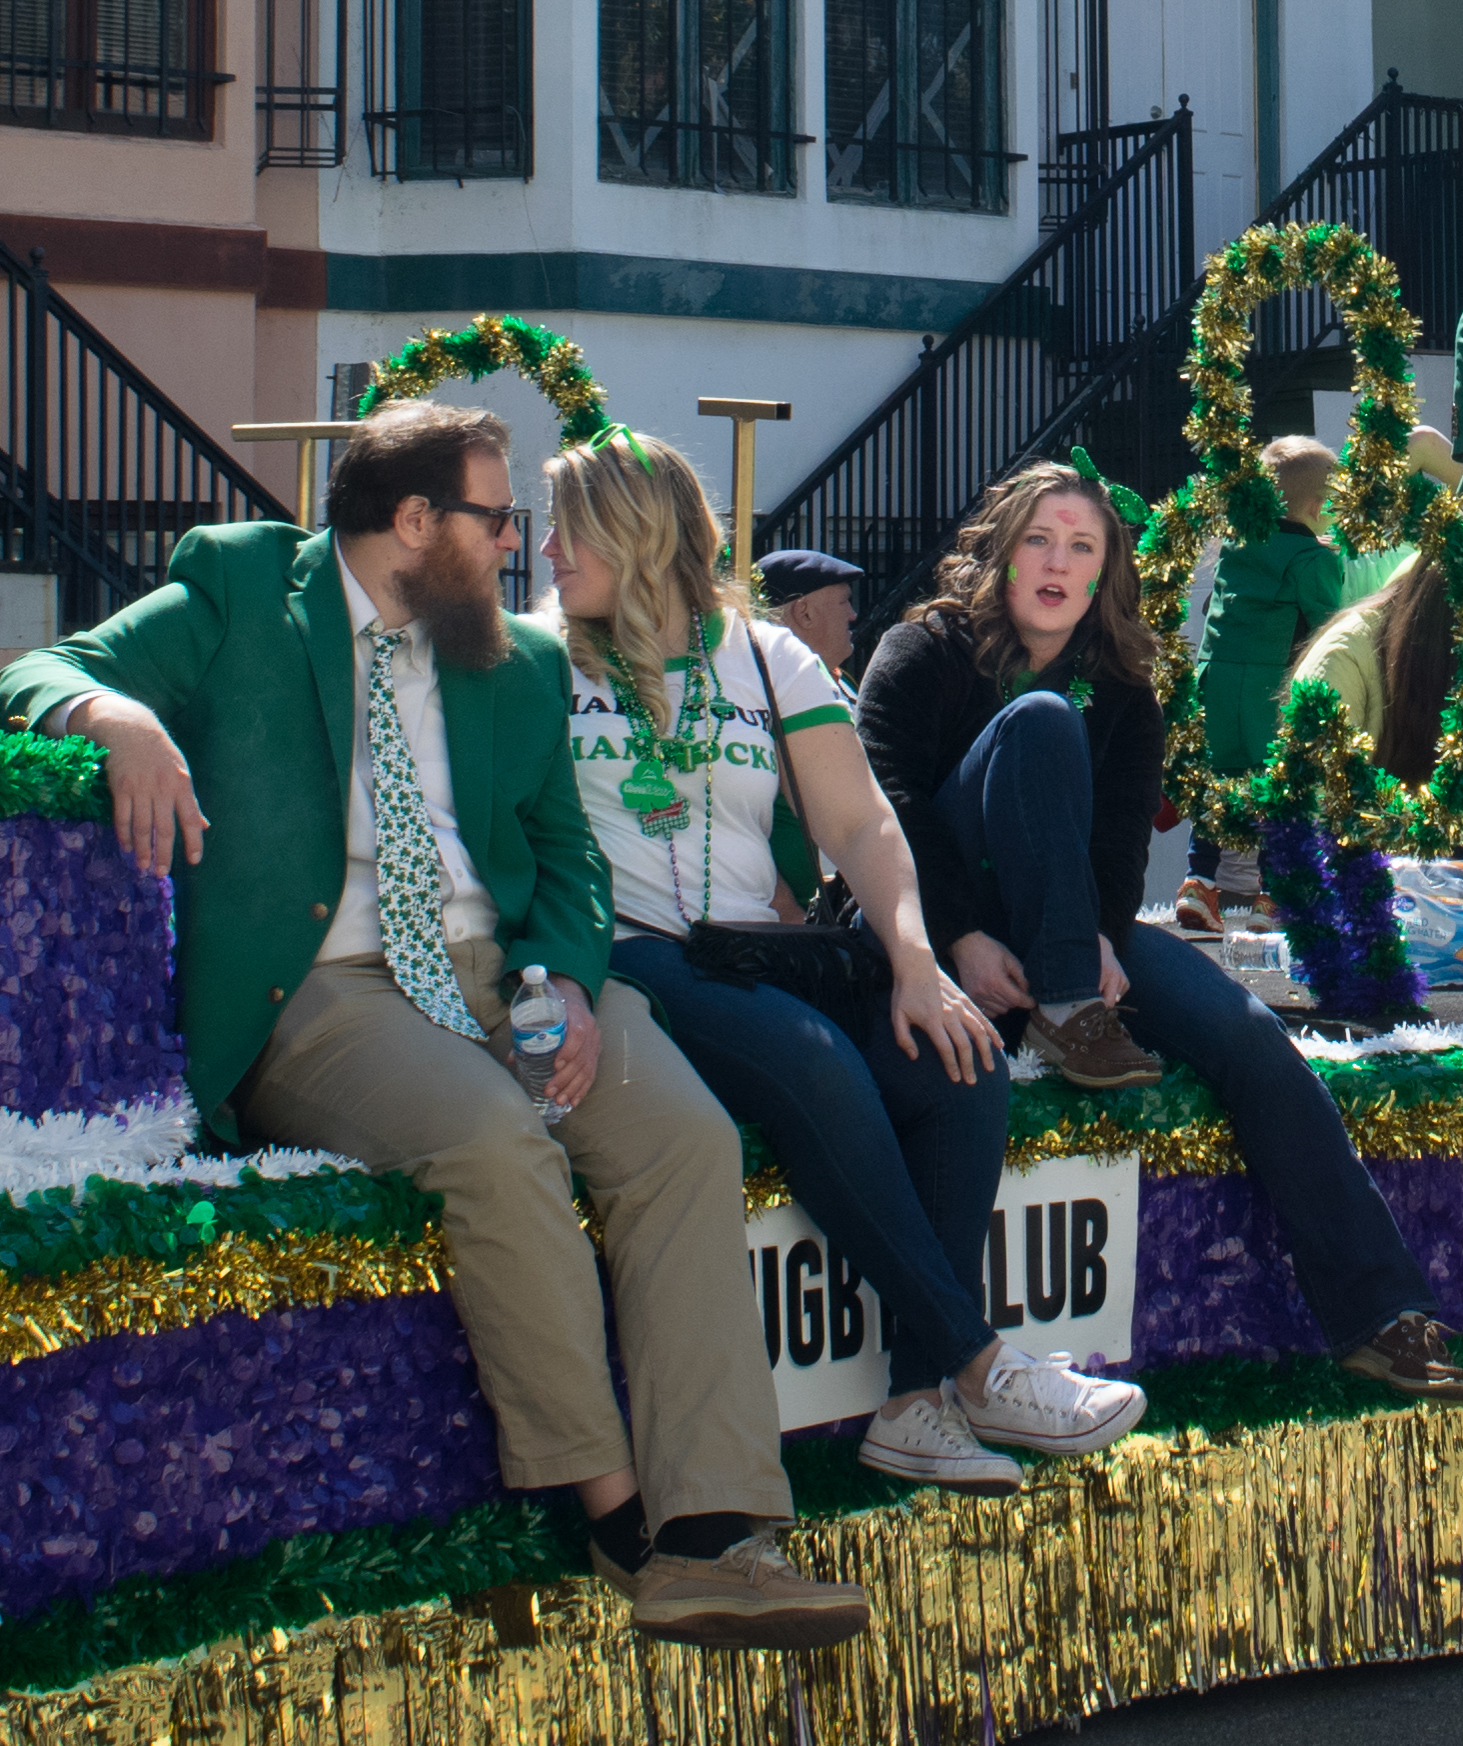 11-4-St Patricks Day 2017.jpg